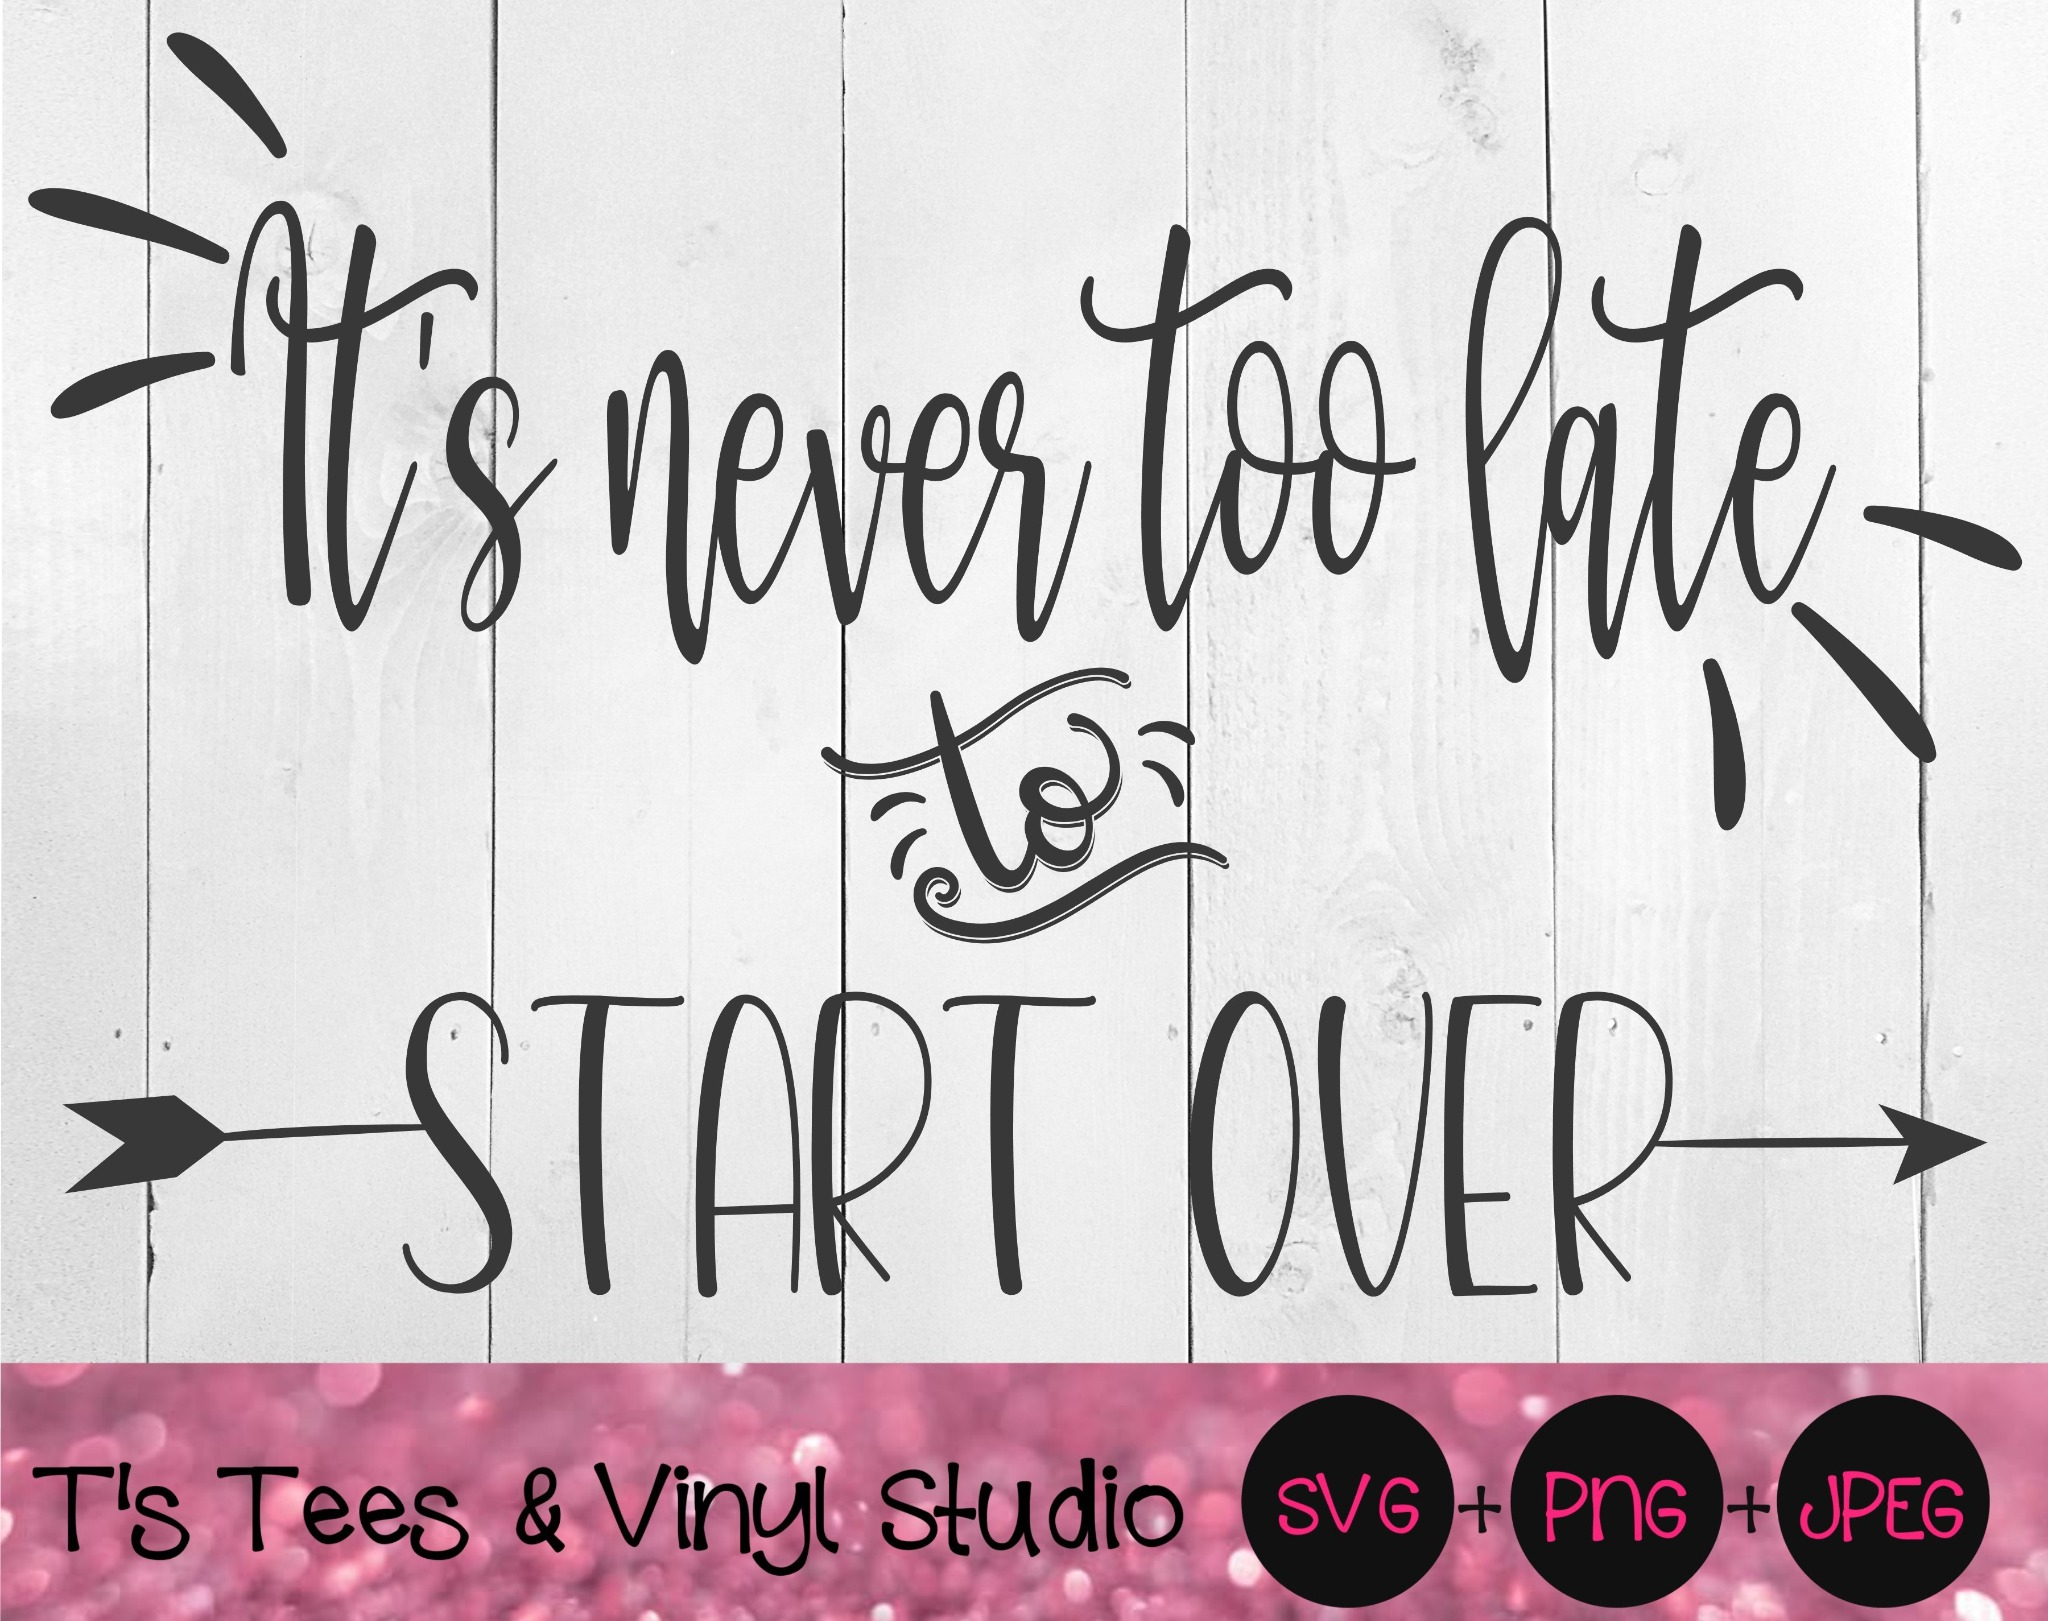 It's Never Too Late, To Start Over, Inspirational SVG, Motivational PNG, Keep Going, Stay Positive,